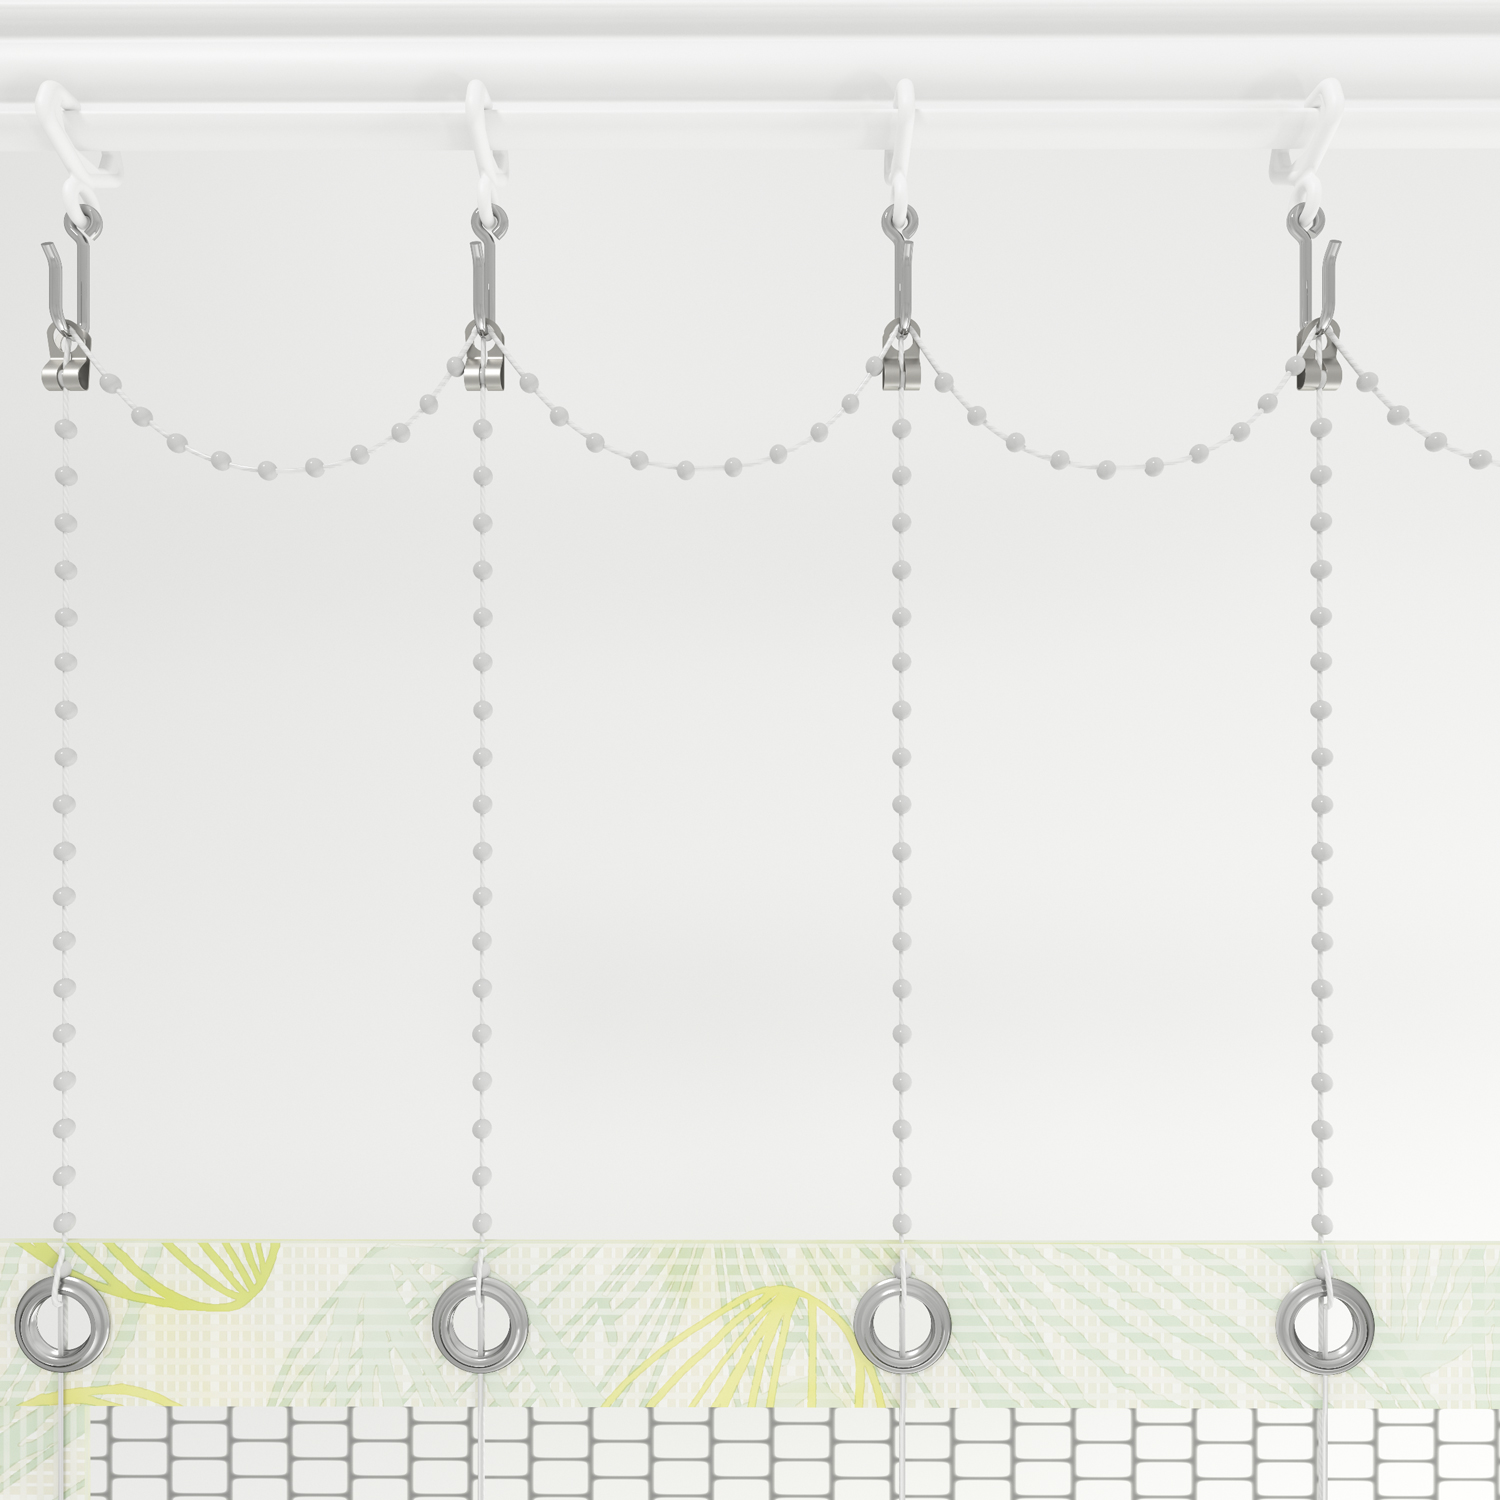 Cubicle curtain adjustable drop chain